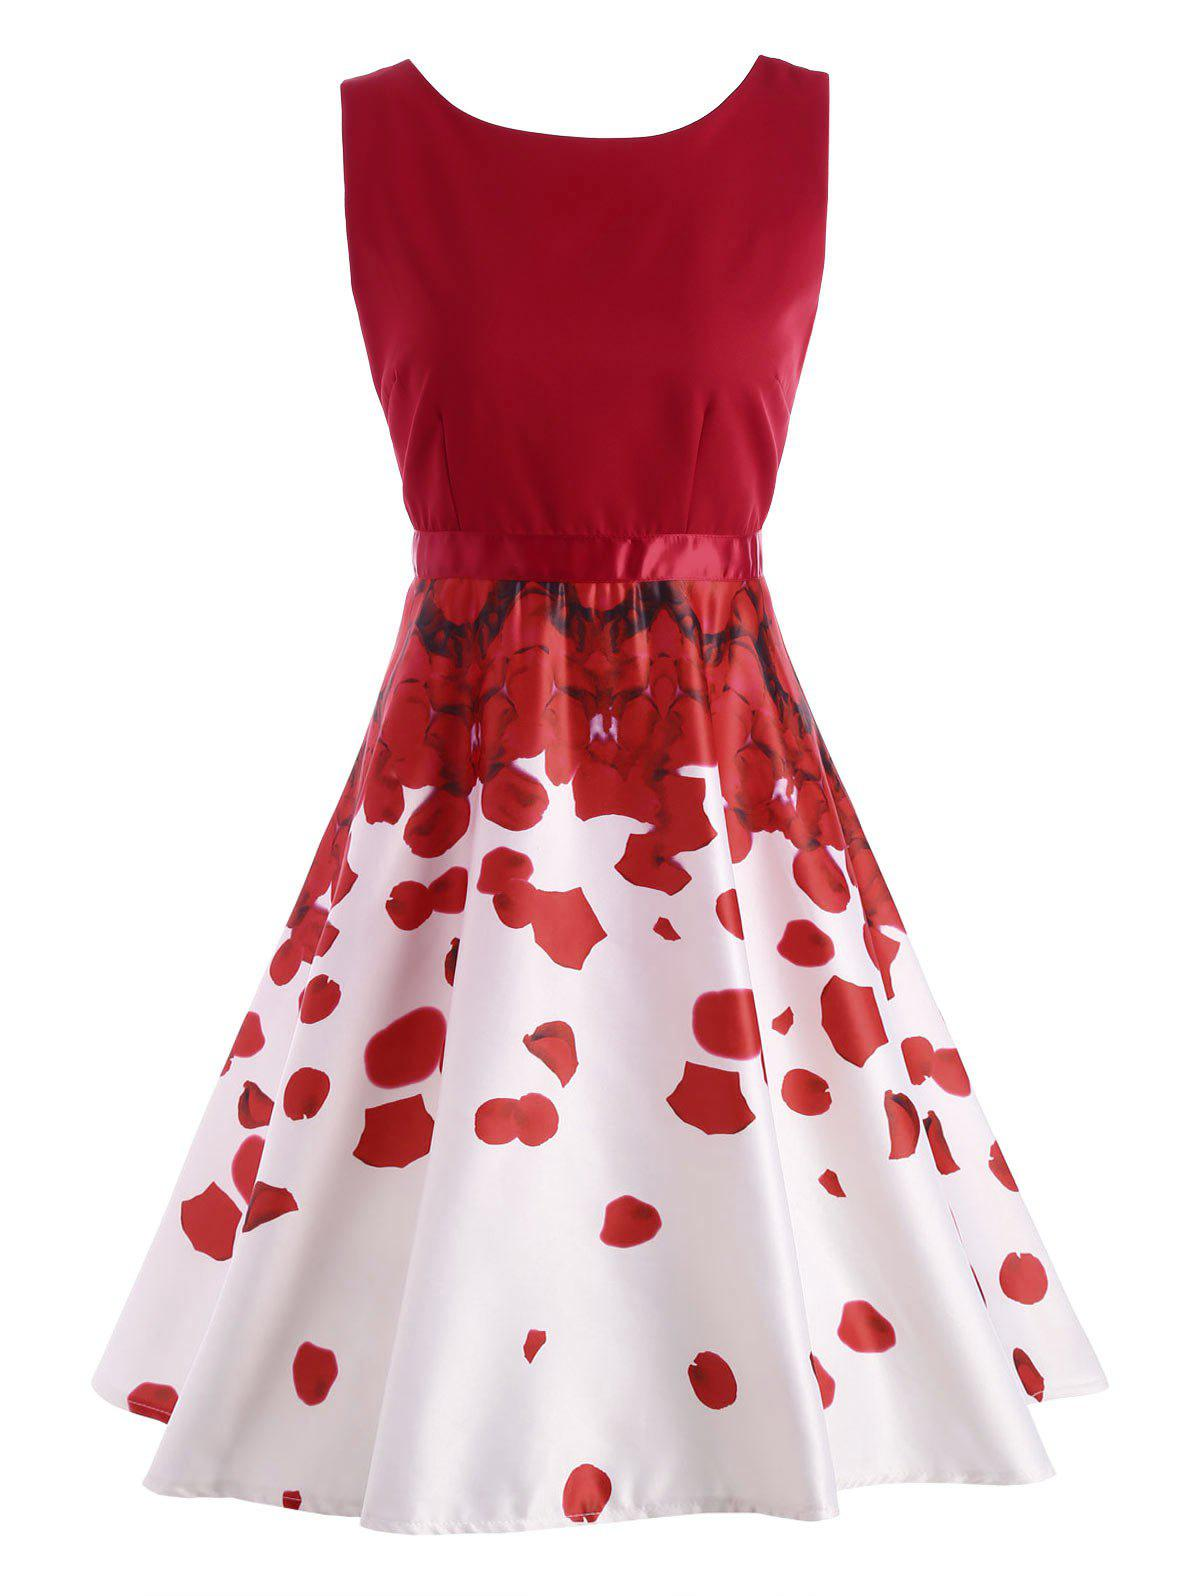 Petal Print Semi Formal Holiday DressWOMEN<br><br>Size: M; Color: RED; Style: Vintage; Material: Cotton,Polyester; Silhouette: A-Line; Dresses Length: Knee-Length; Neckline: Round Collar; Sleeve Length: Sleeveless; Pattern Type: Print; With Belt: No; Season: Summer; Weight: 0.3500kg; Package Contents: 1 x Dress;